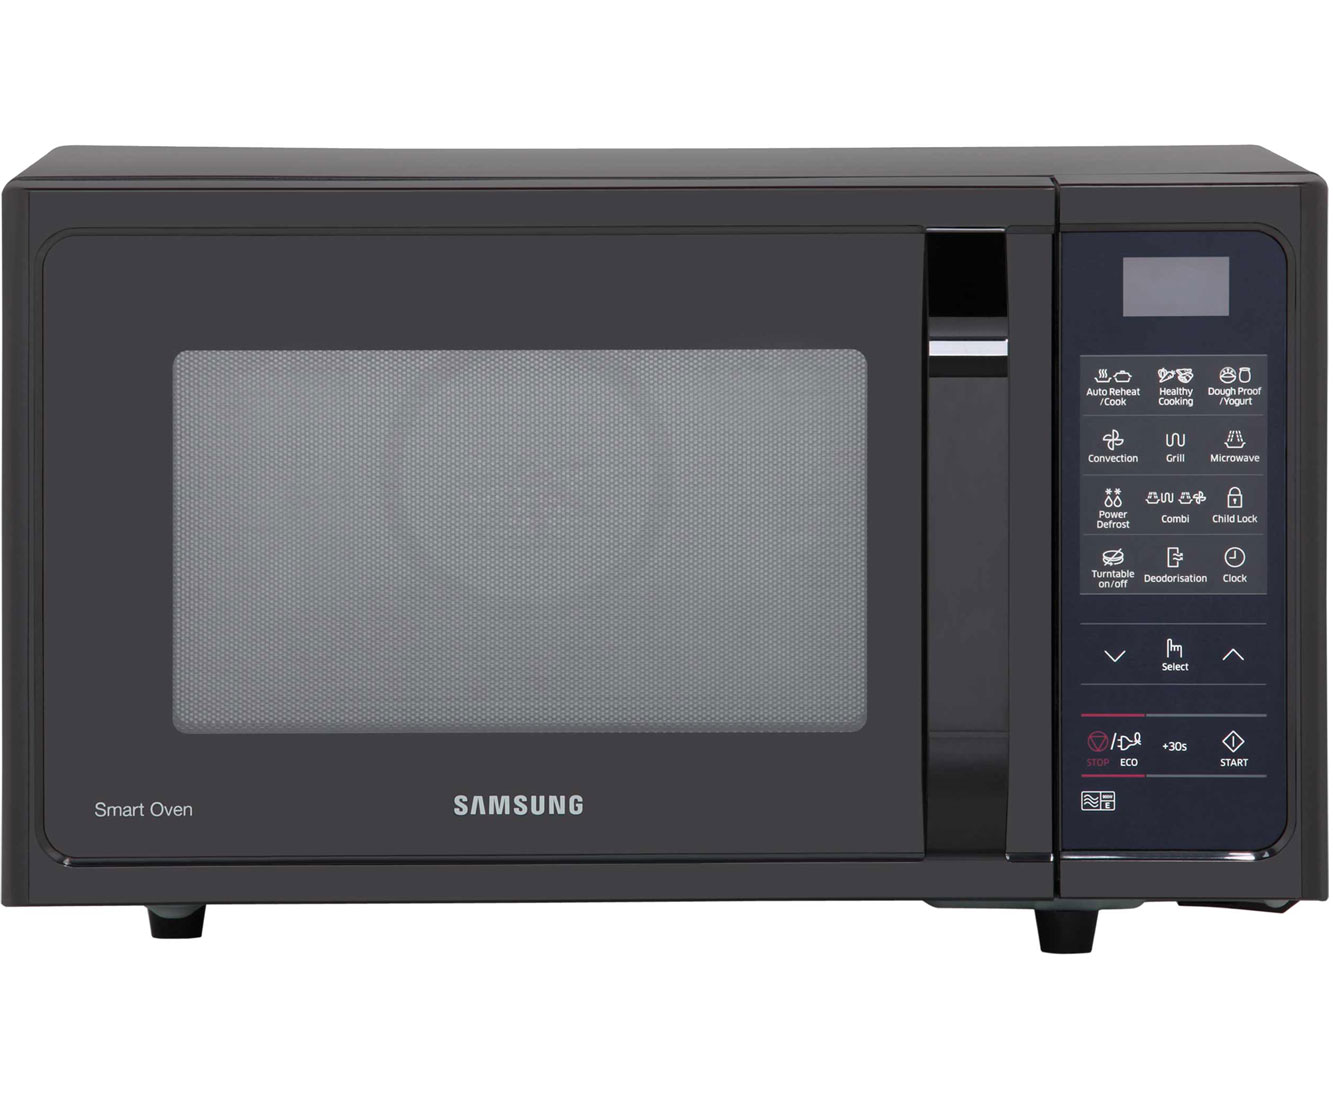 Samsung Smart Oven Mc28h5013ak 28 Litre Combination Microwave